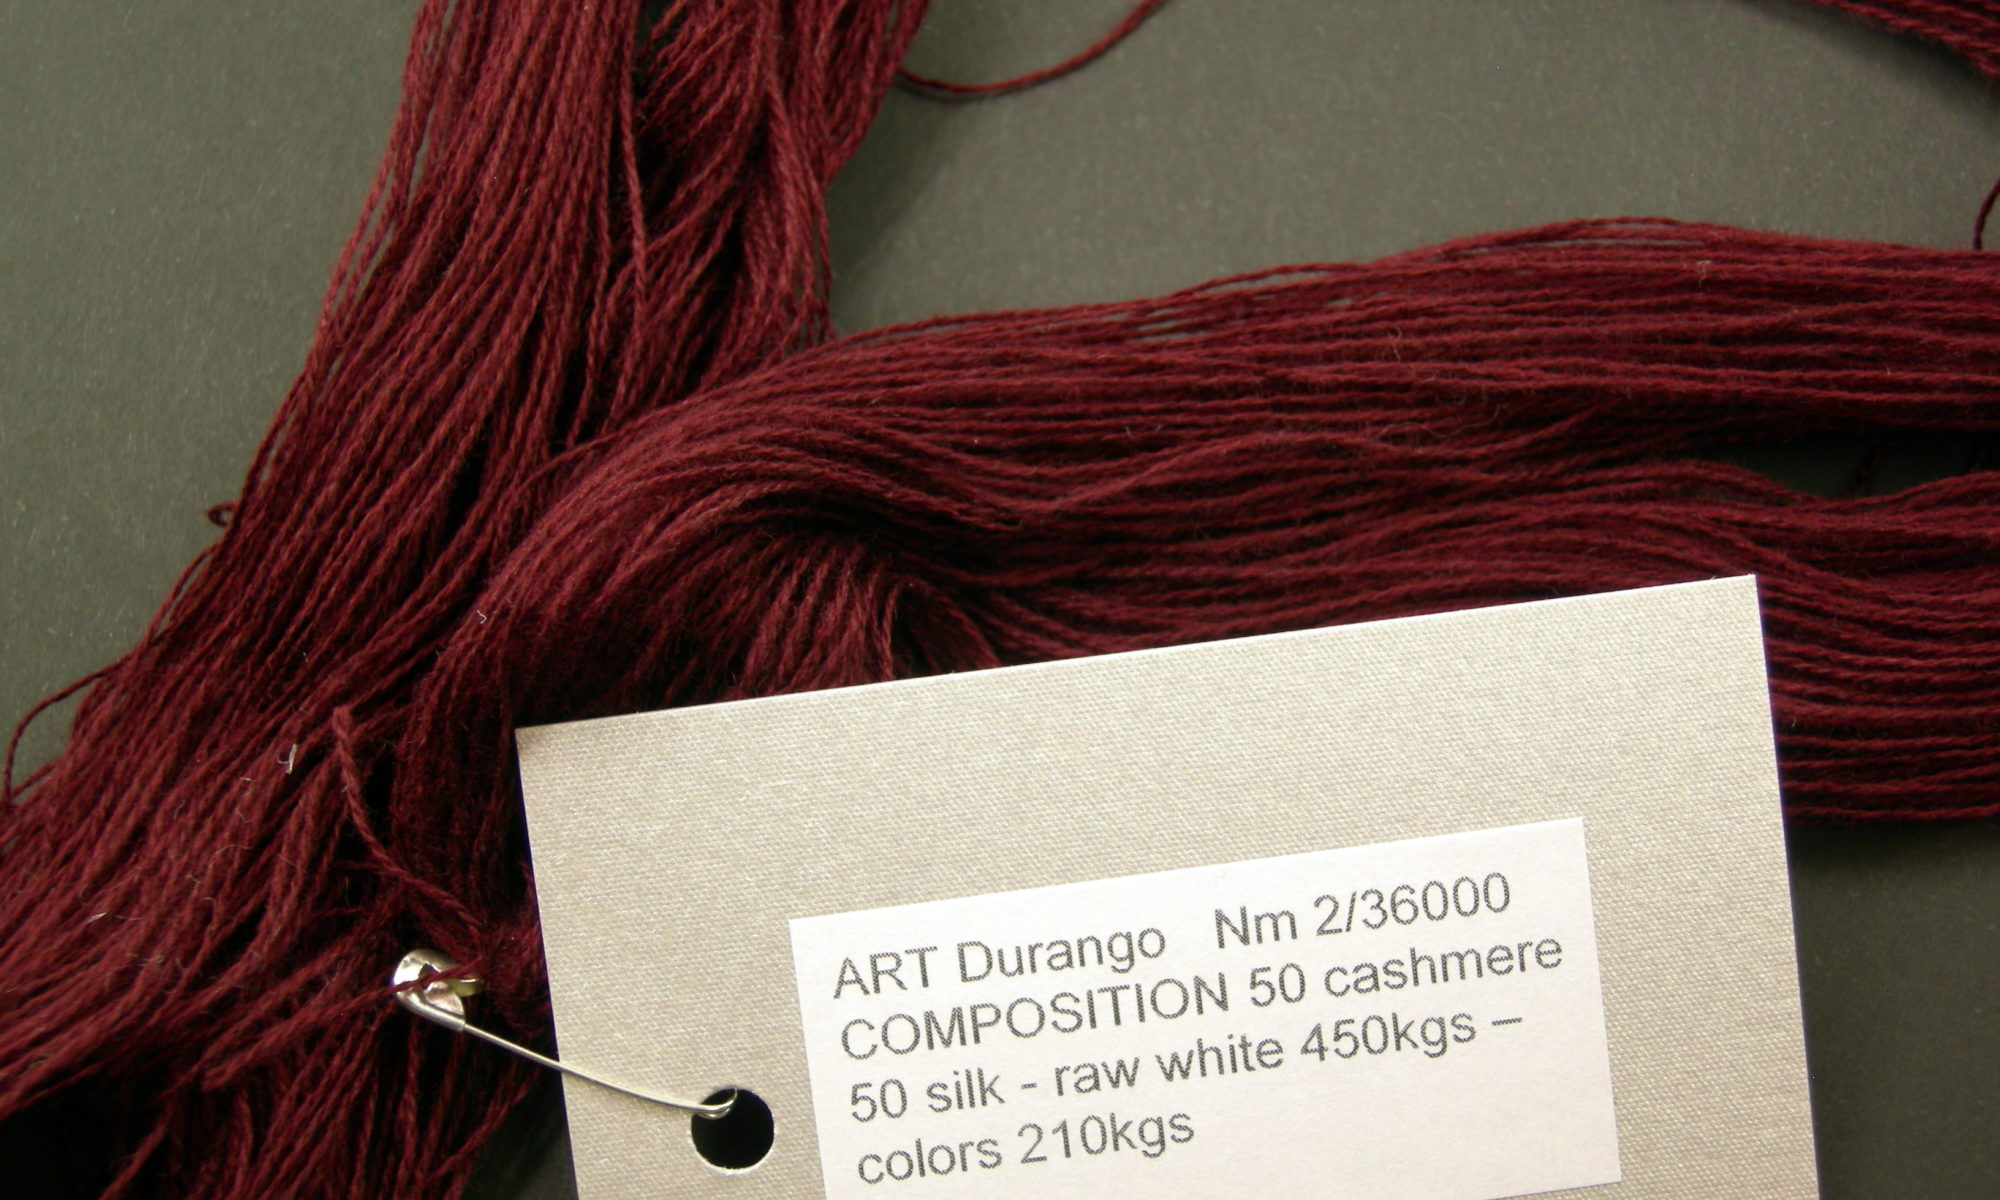 ART Durango Nm 2 36000 COMPOSITION 50 cashmere 50 silk - raw white 450kgs – colors 210kgs